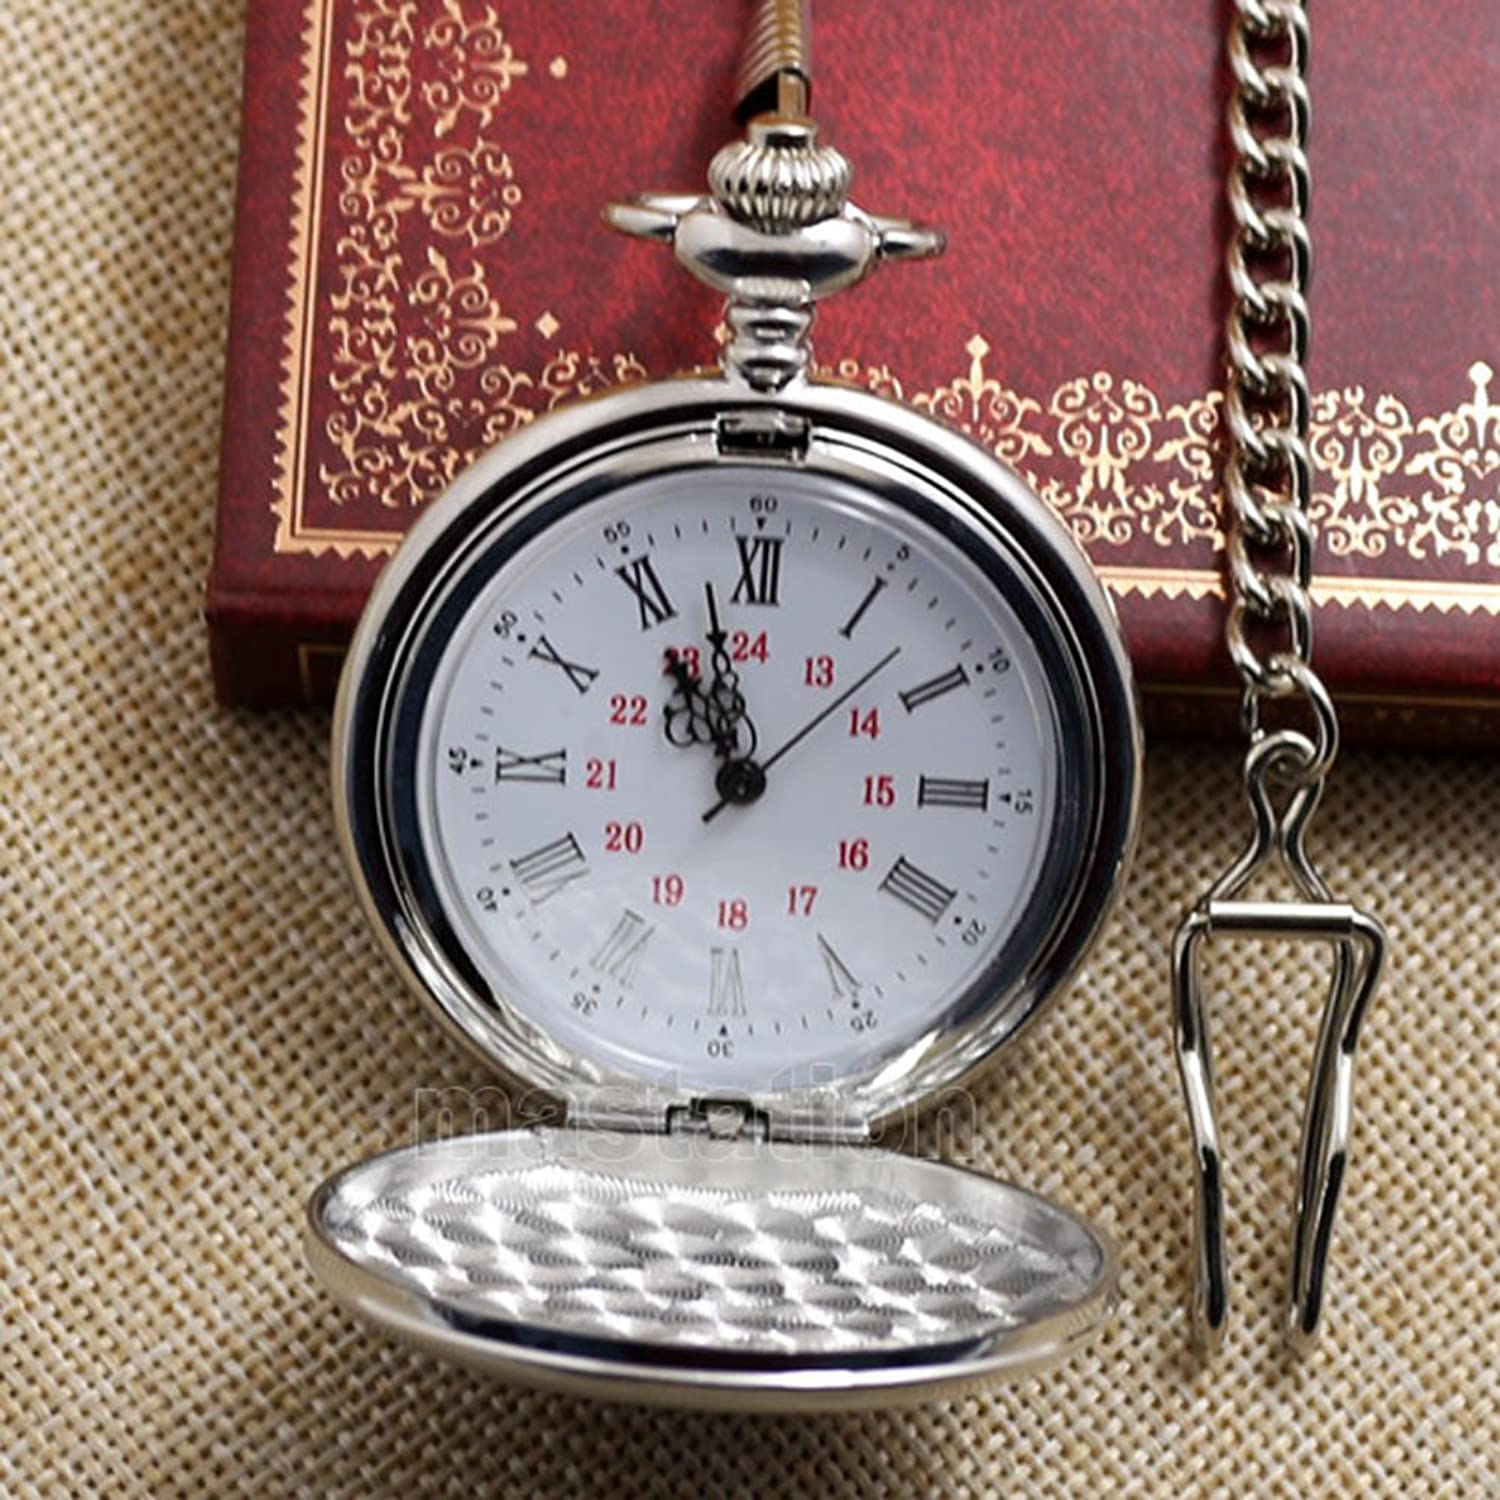 1900s Edwardian Men's Suits and Coats WIOR Classic Smooth Vintage Pocket Watch Sliver Steel Men Watch with 14'' Chain for Xmas Fathers Day Gift $9.99 AT vintagedancer.com